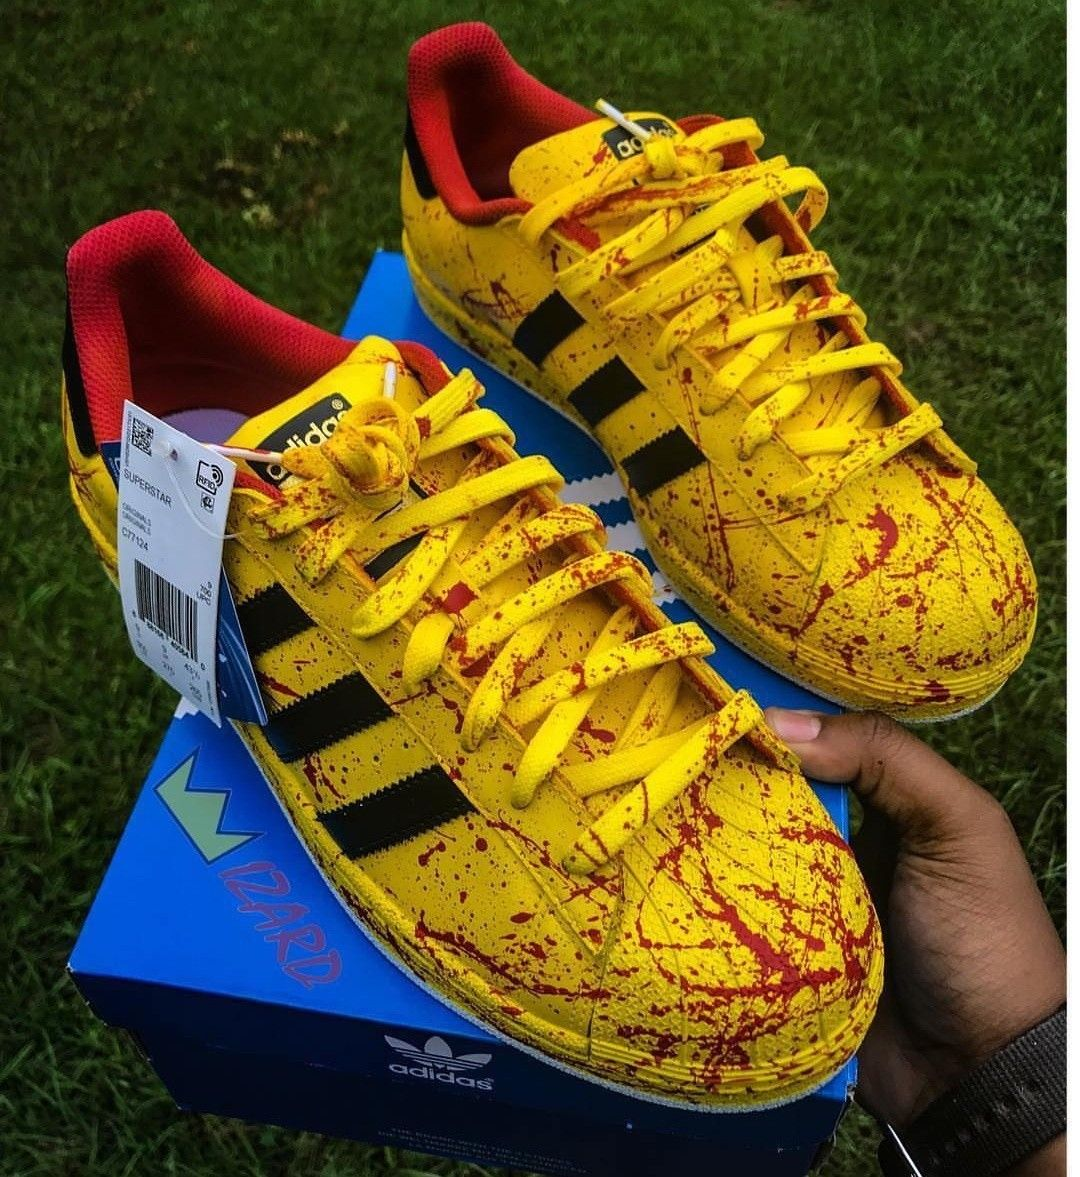 c1360e7ea96 These custom painted adidas sneakers remind me of kill bill.  adidas   adidassneaker